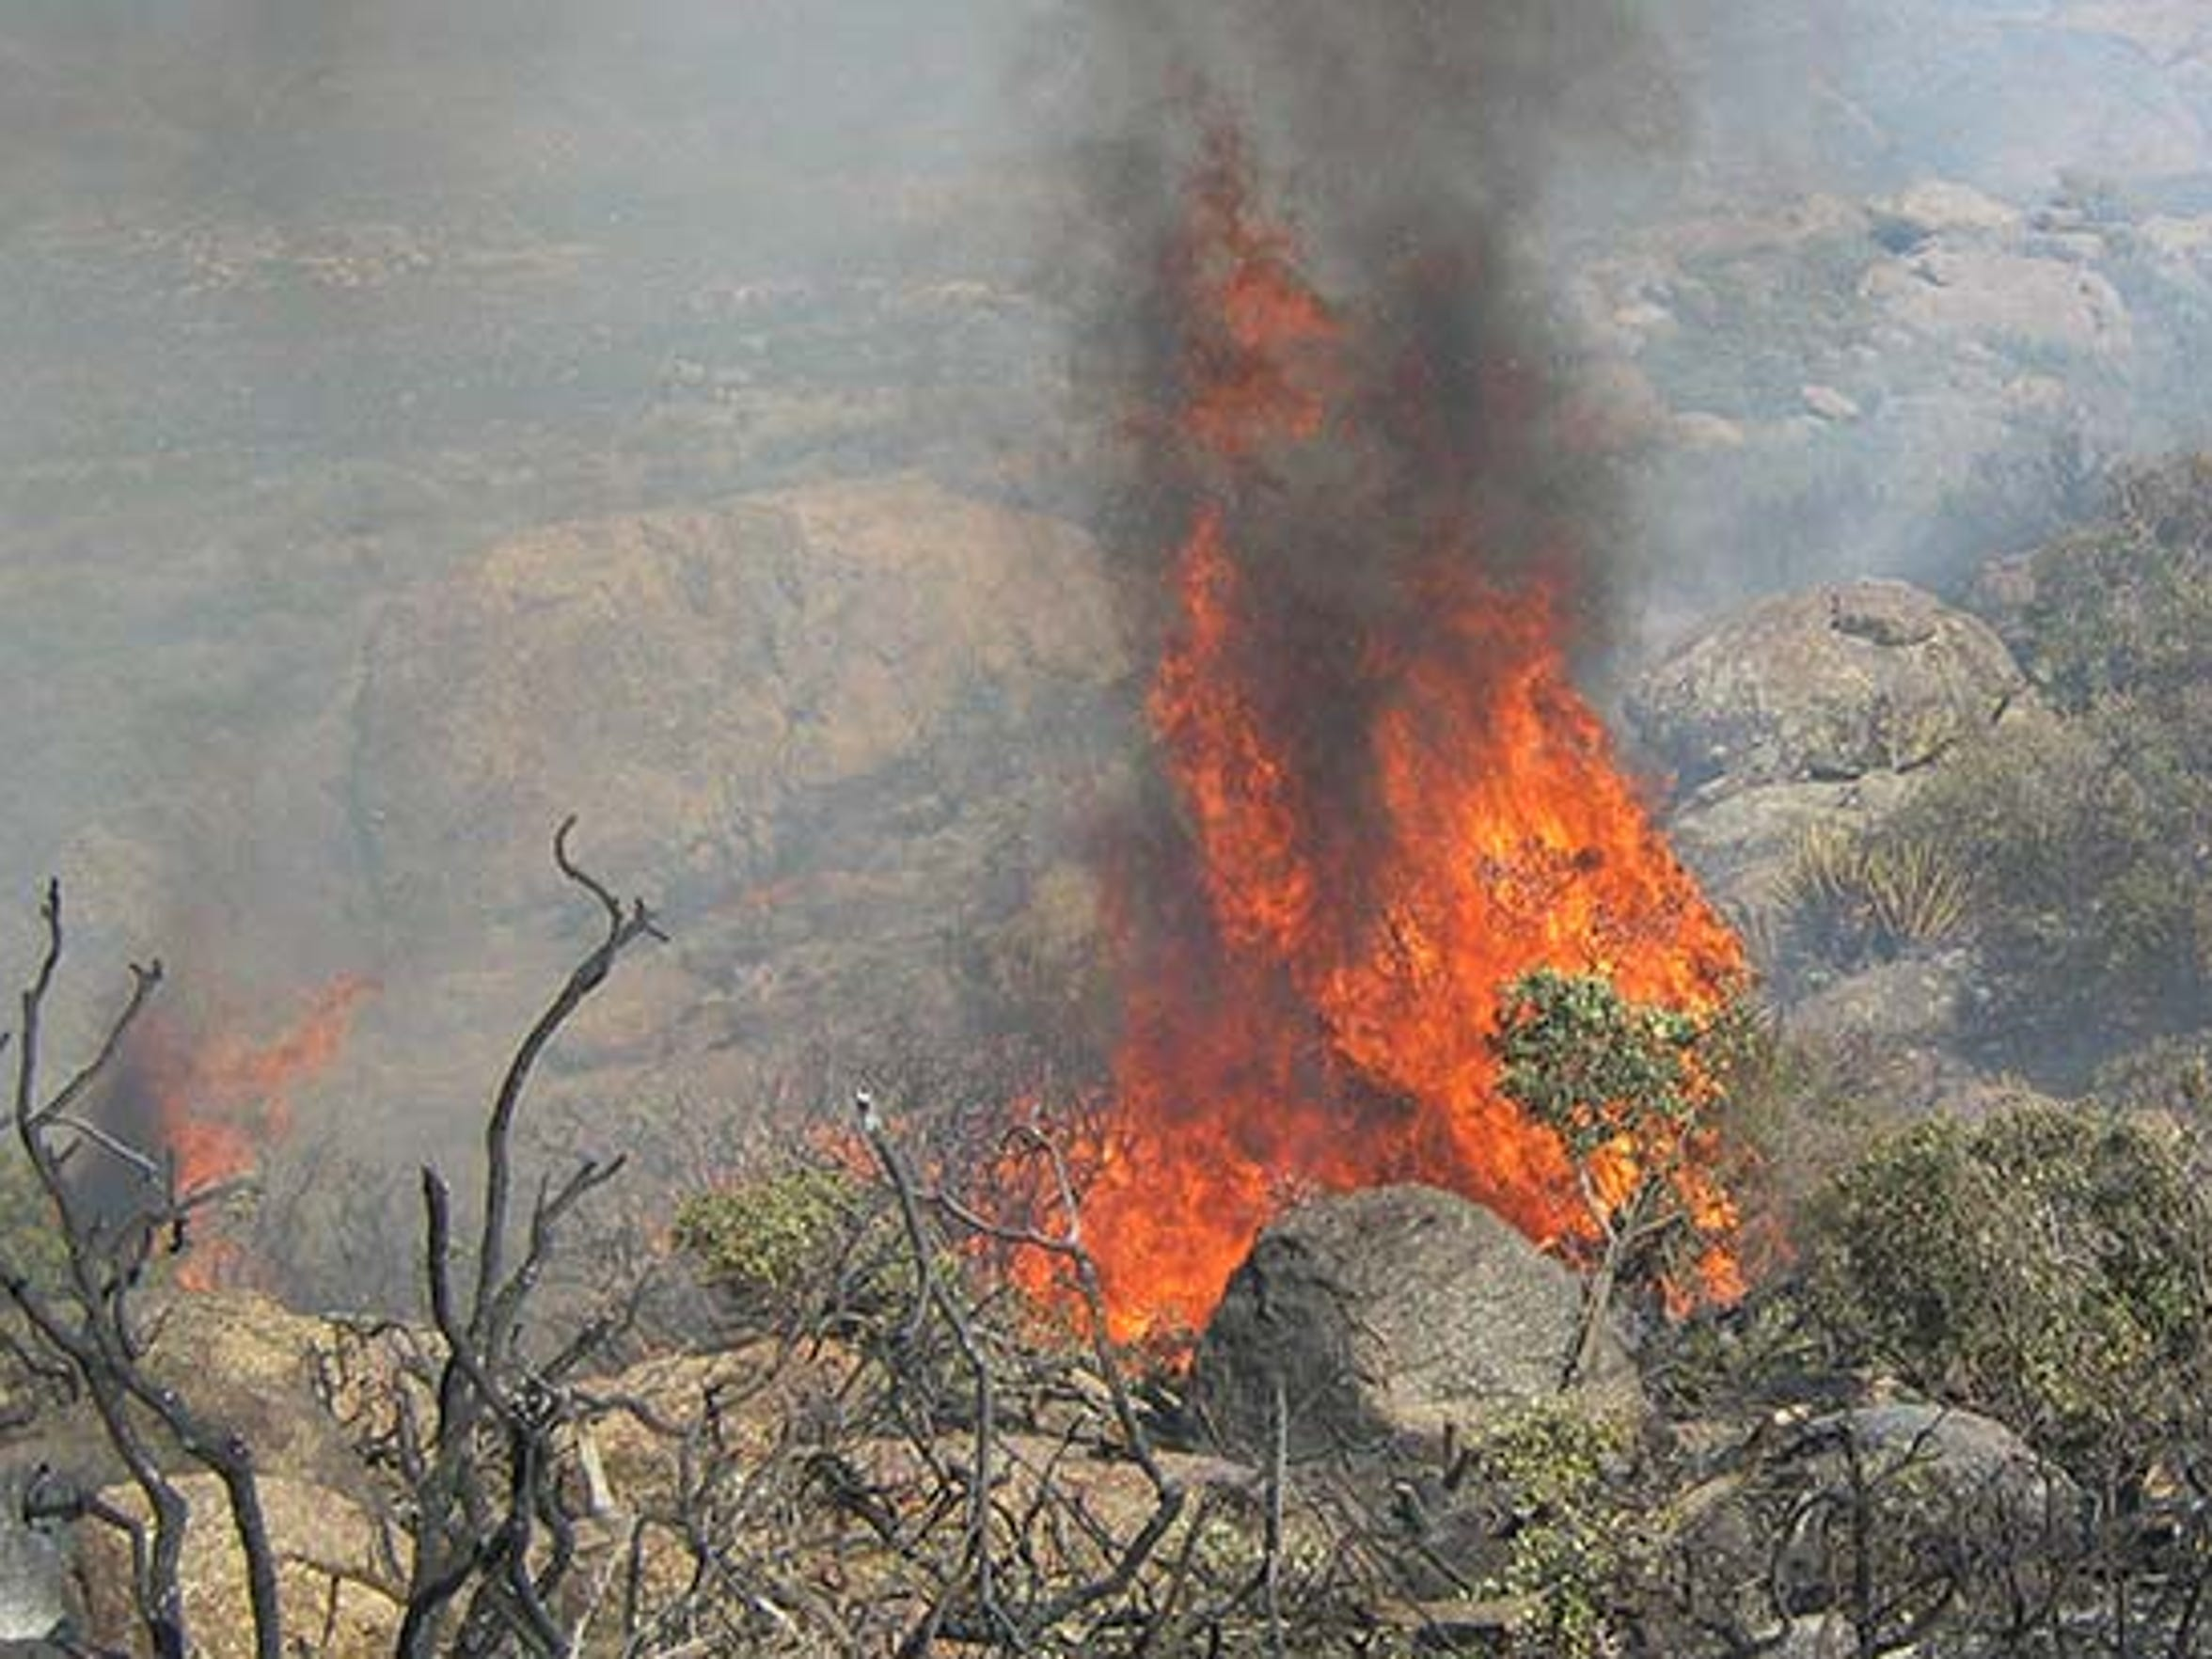 The fire flared up in dry brush on Saturday.